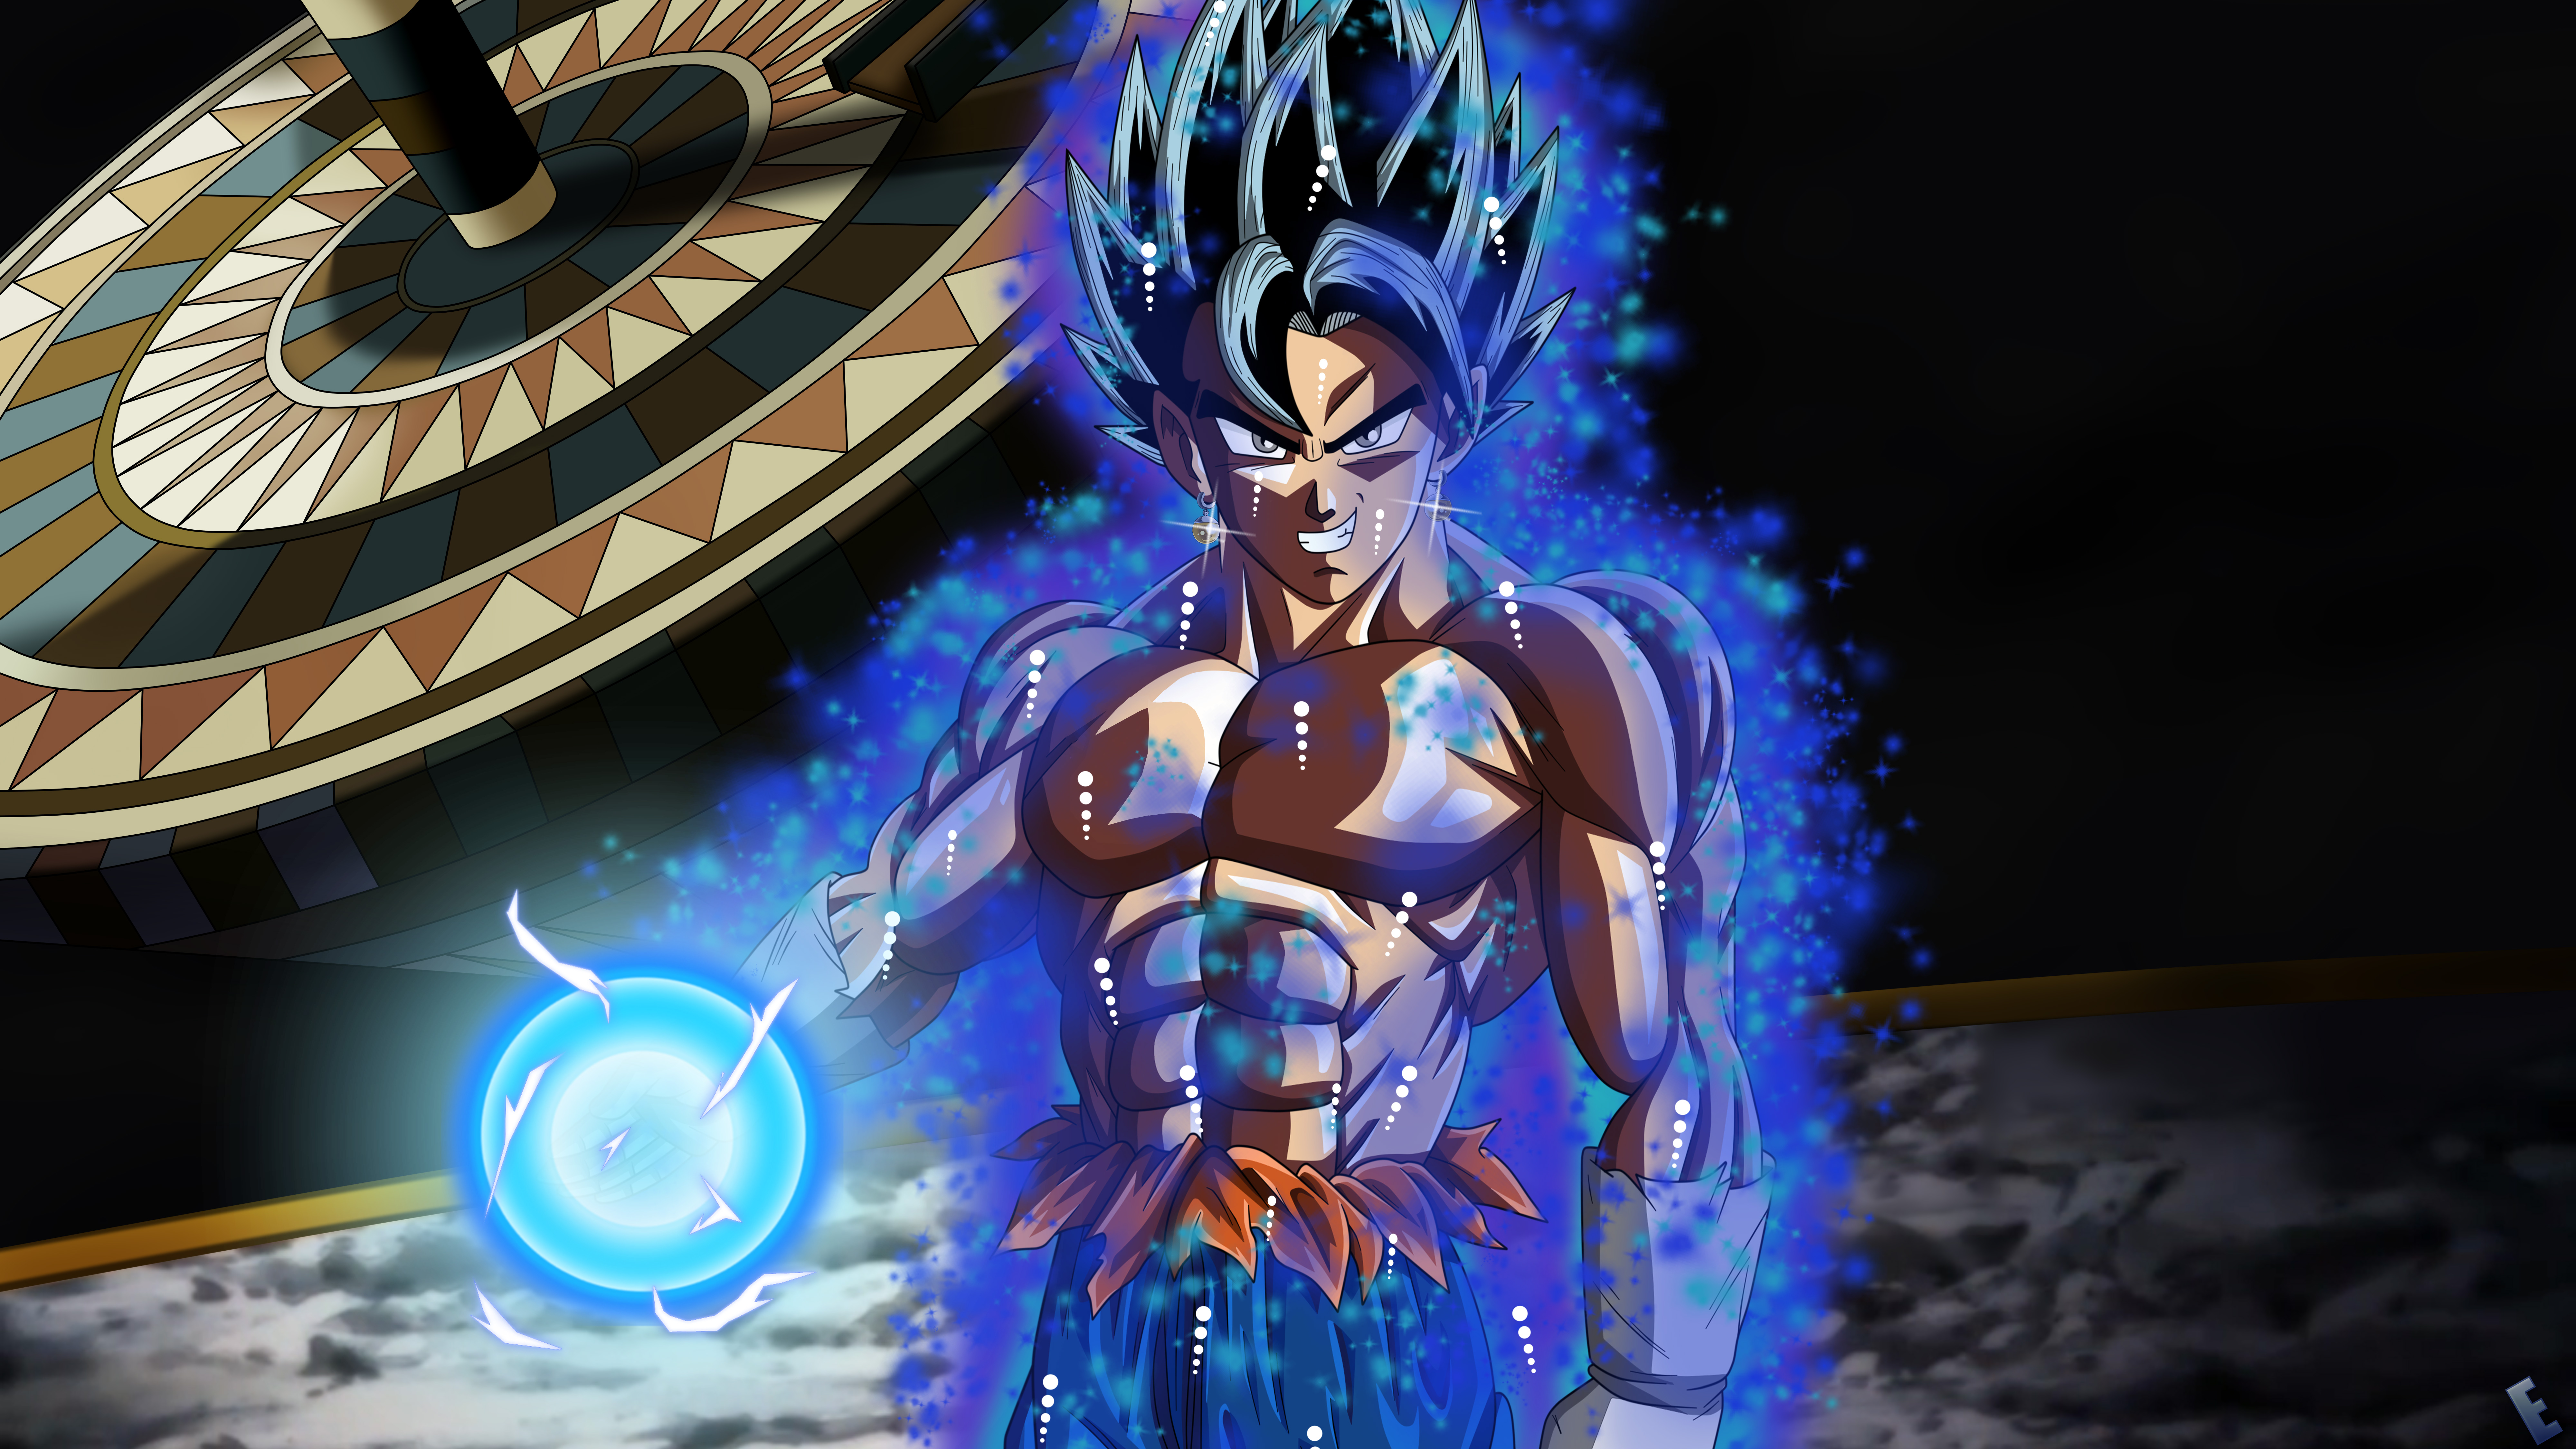 Goku Dragon Ball Super 8k Hd Anime 4k Wallpapers Images Backgrounds Photos And Pictures